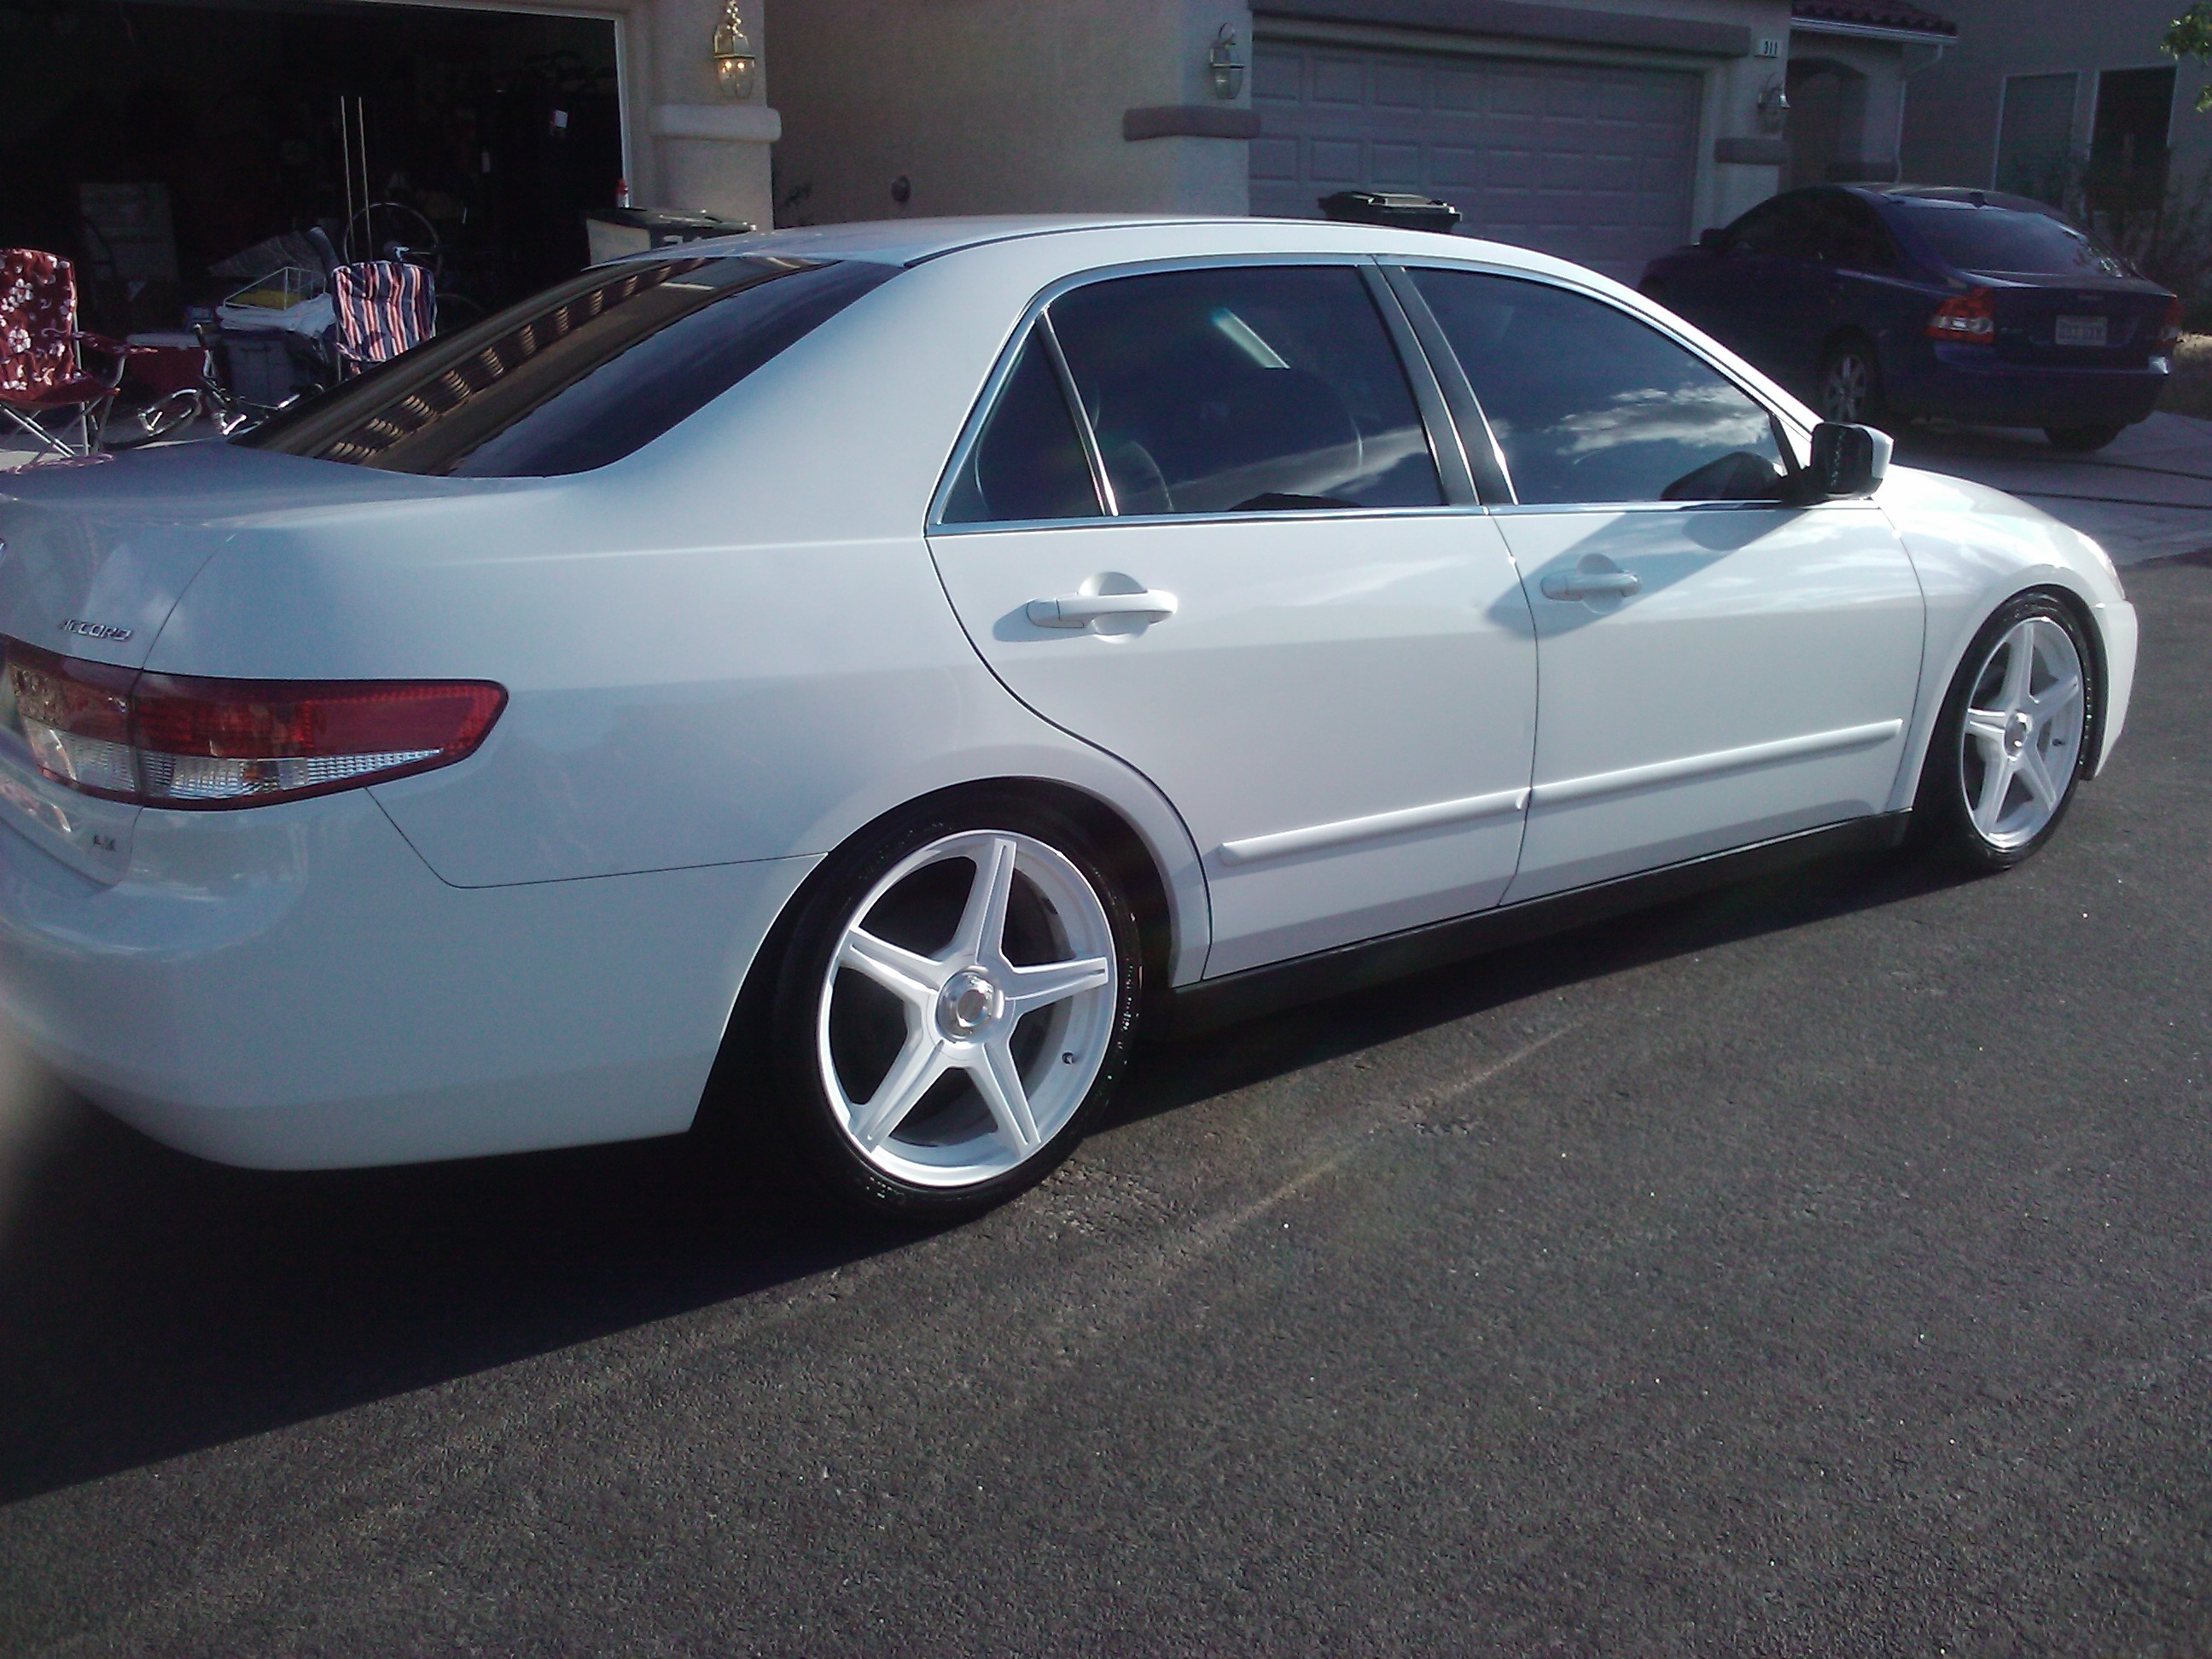 JDMechanic 2003 Honda Accord 3568543